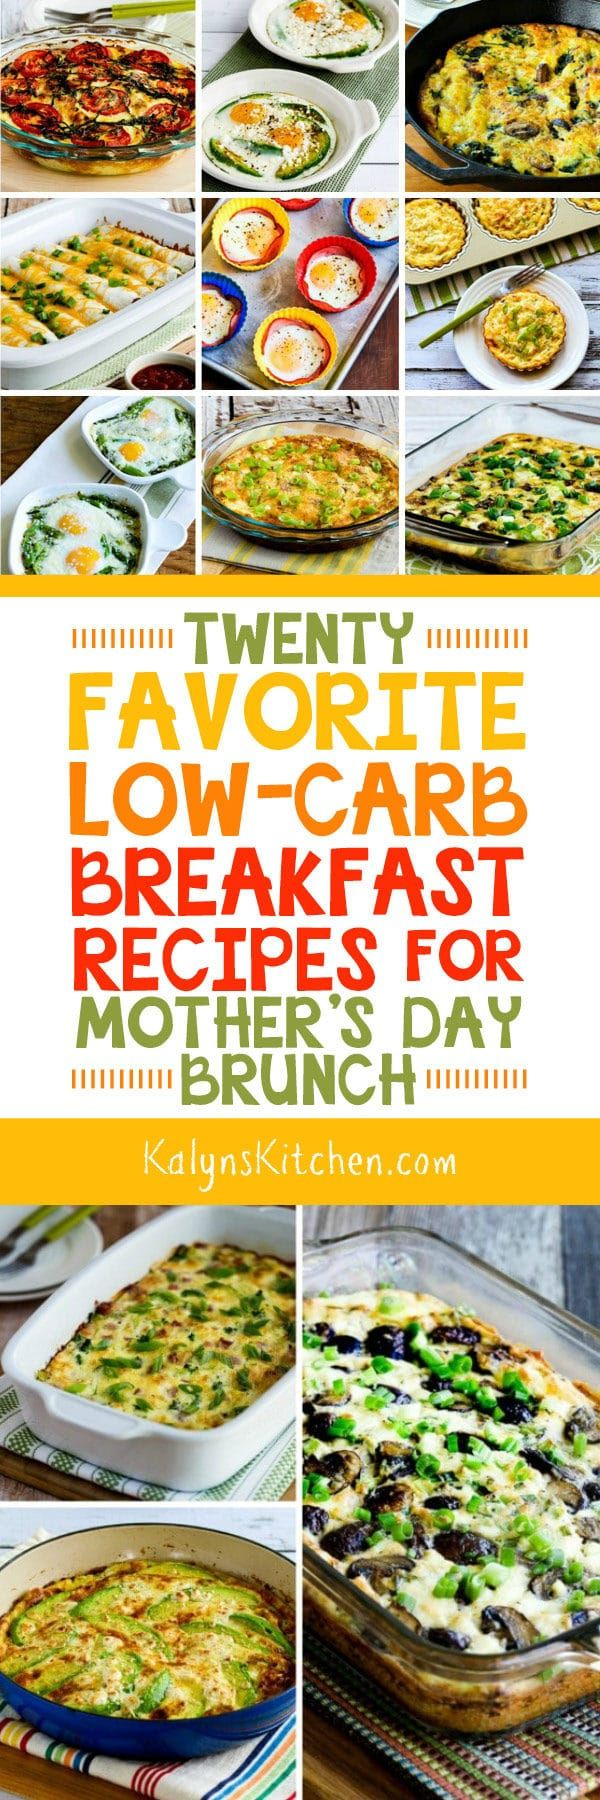 Twenty Favorite Low-Carb Breakfast Recipes for Mother's Day Brunch found on KalynsKitchen.com